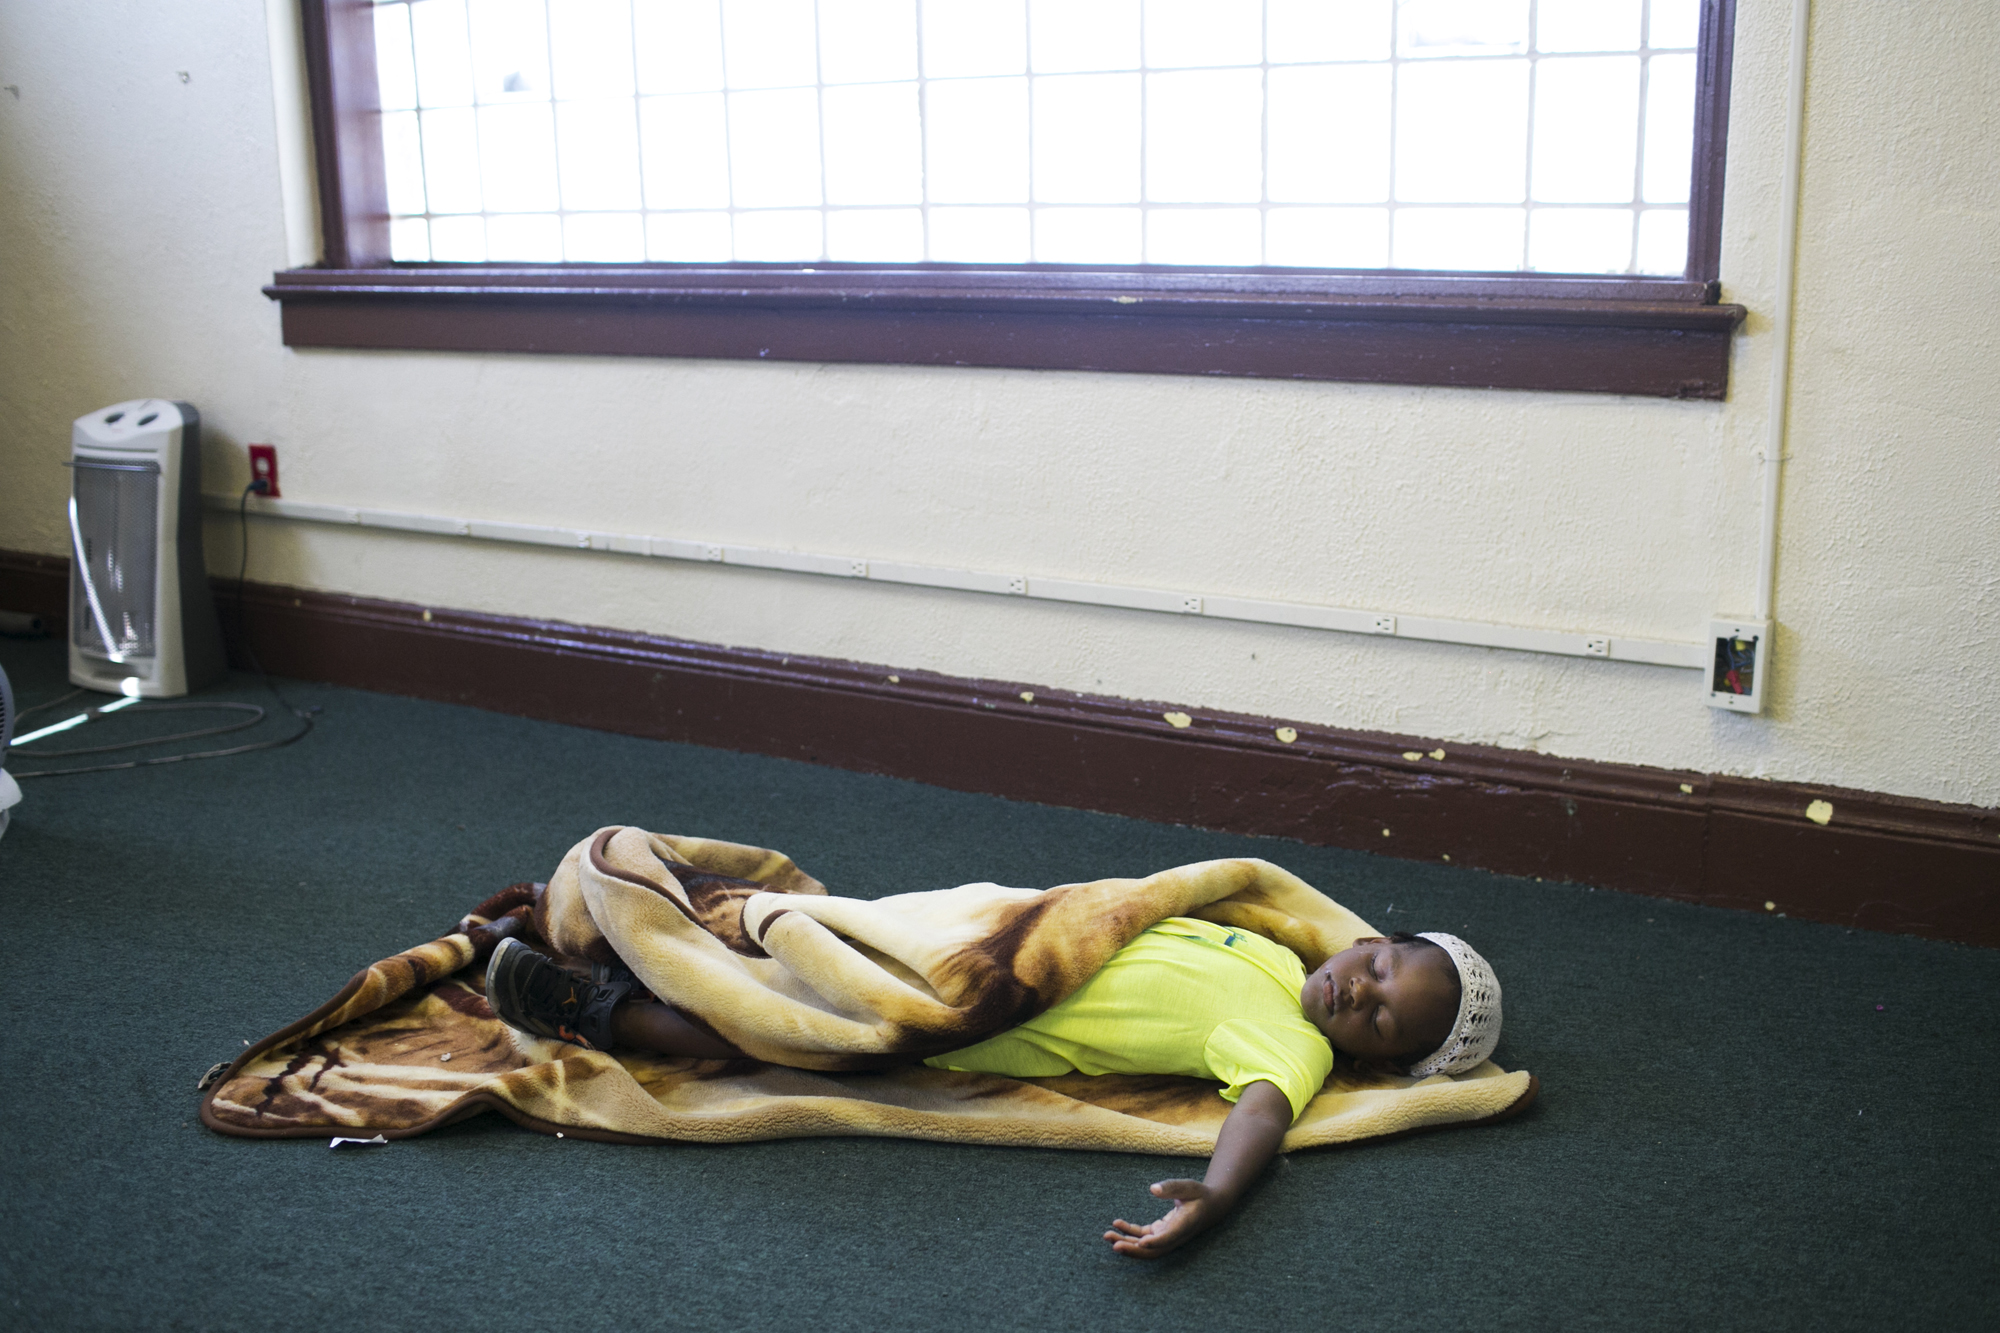 A boy sleeps on the floor of Masonic Hall in Cleveland, OH on Tuesday, July 19, 2016.